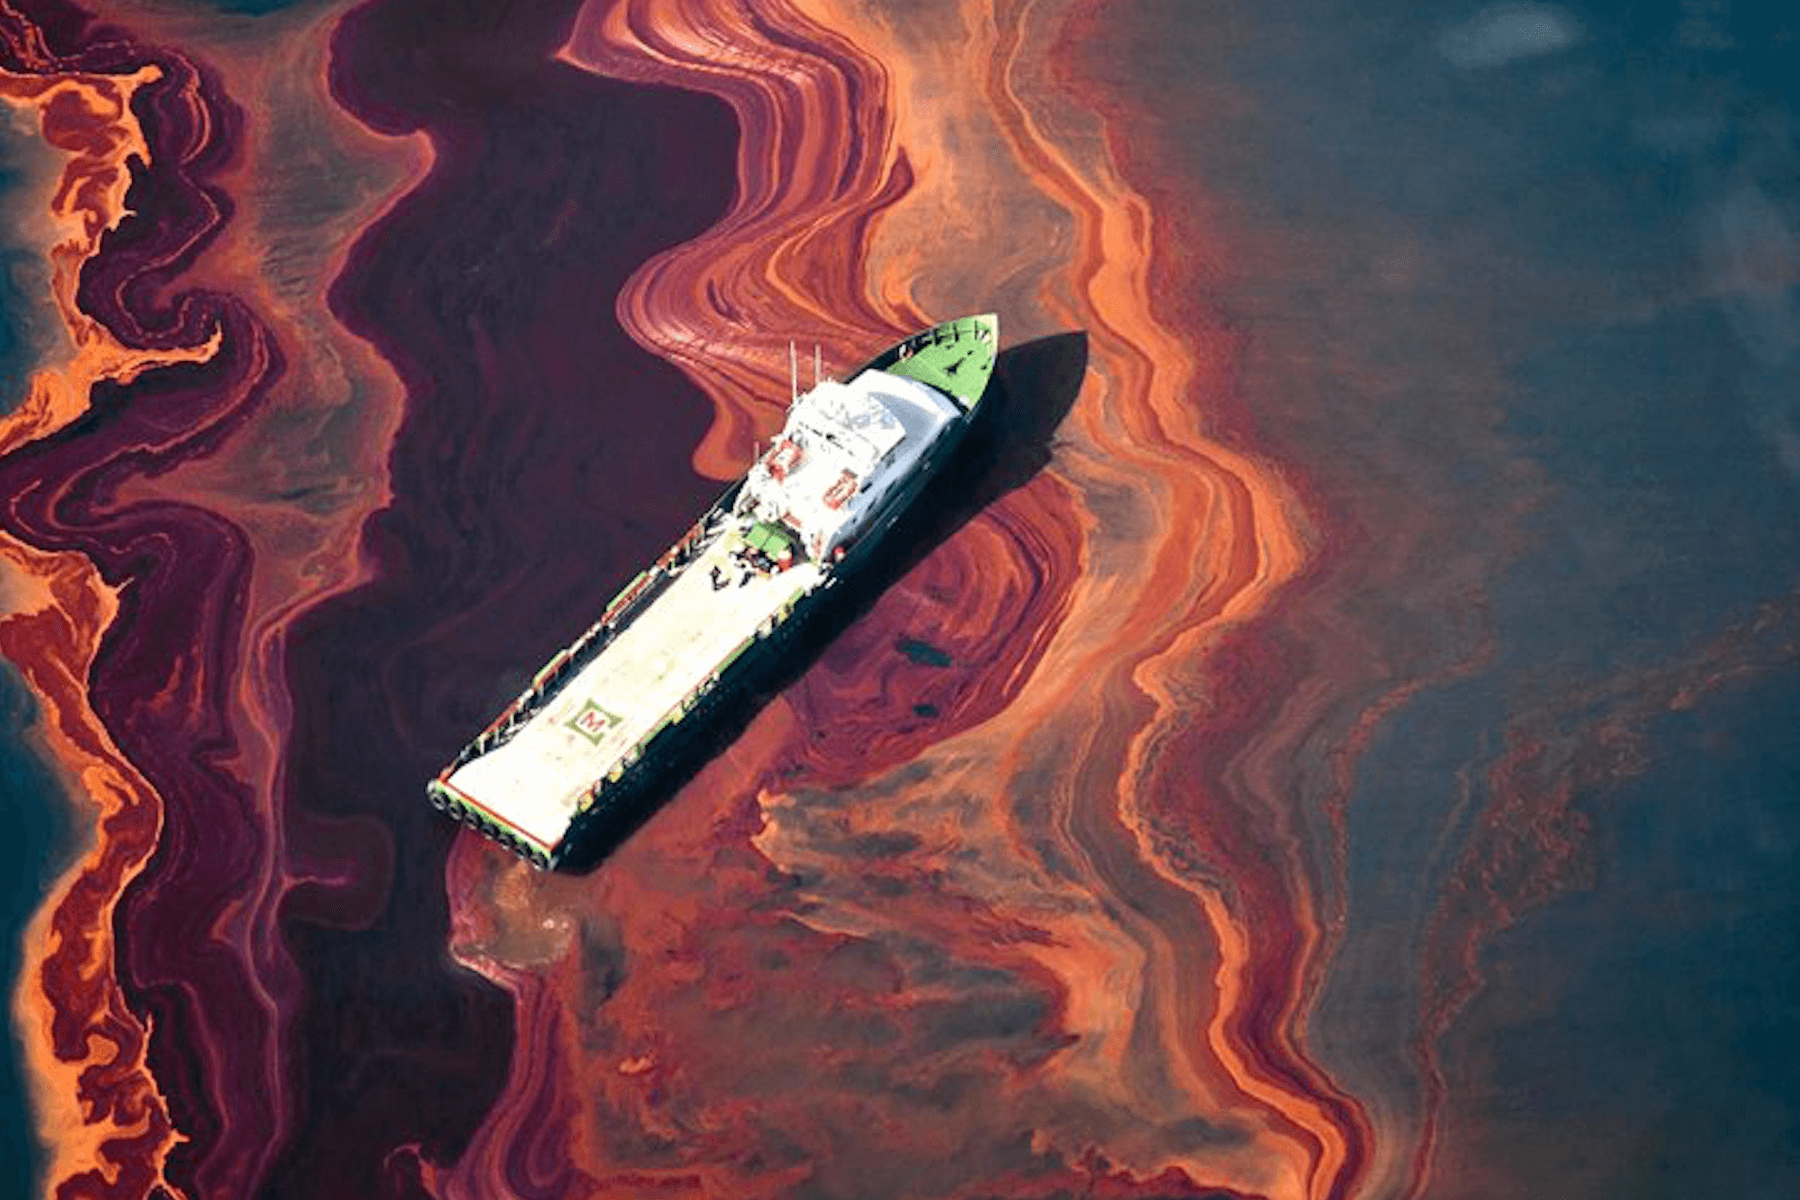 Oil spill in the ocean caused by a ship